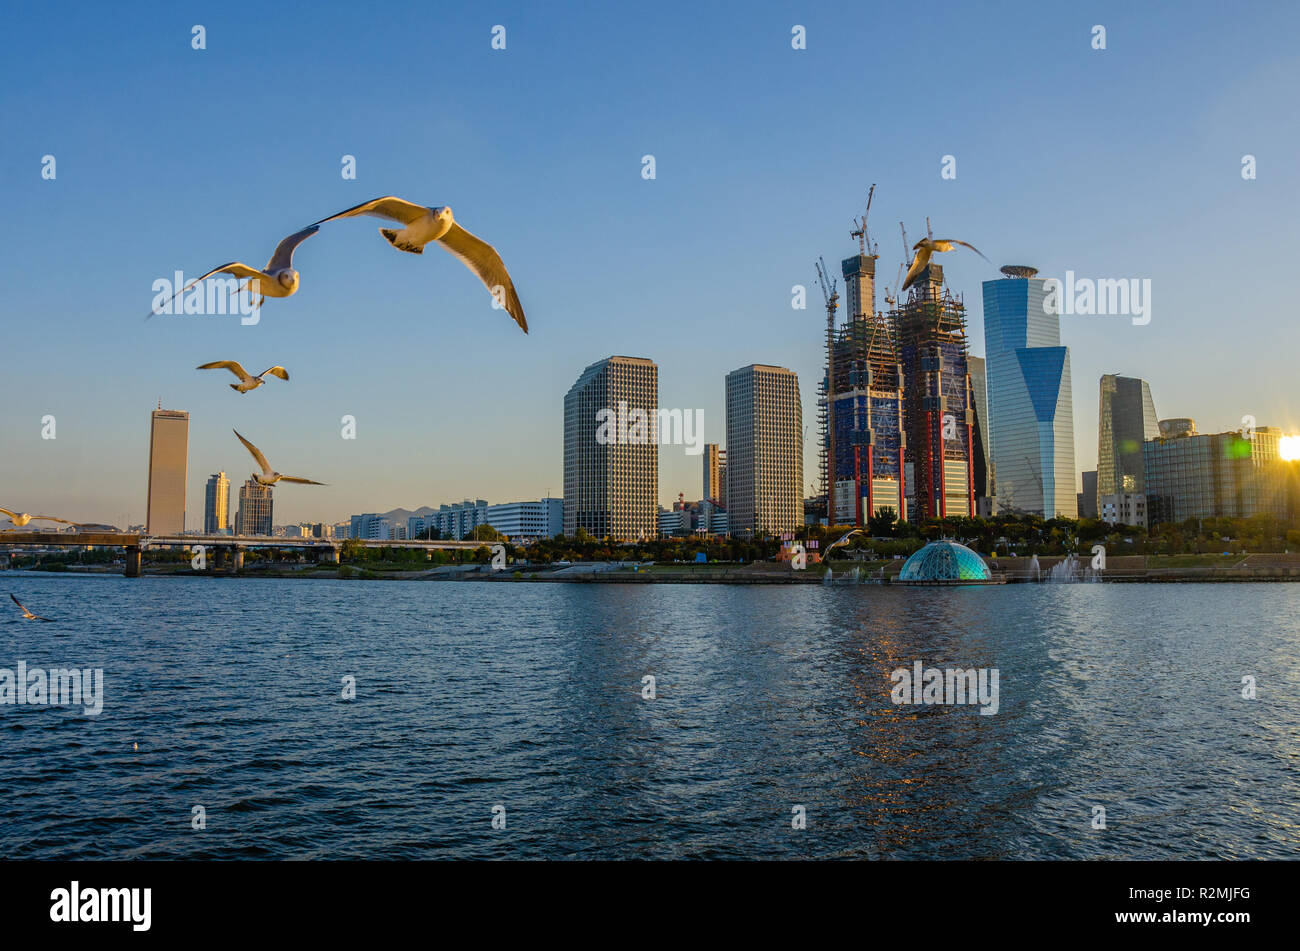 seaguls-fly-over-the-han-river-in-seoul-south-korea-in-early-evening-in-yeoeido-dong-new-skyscrapers-are-being-constructed-R2MJFG.jpg